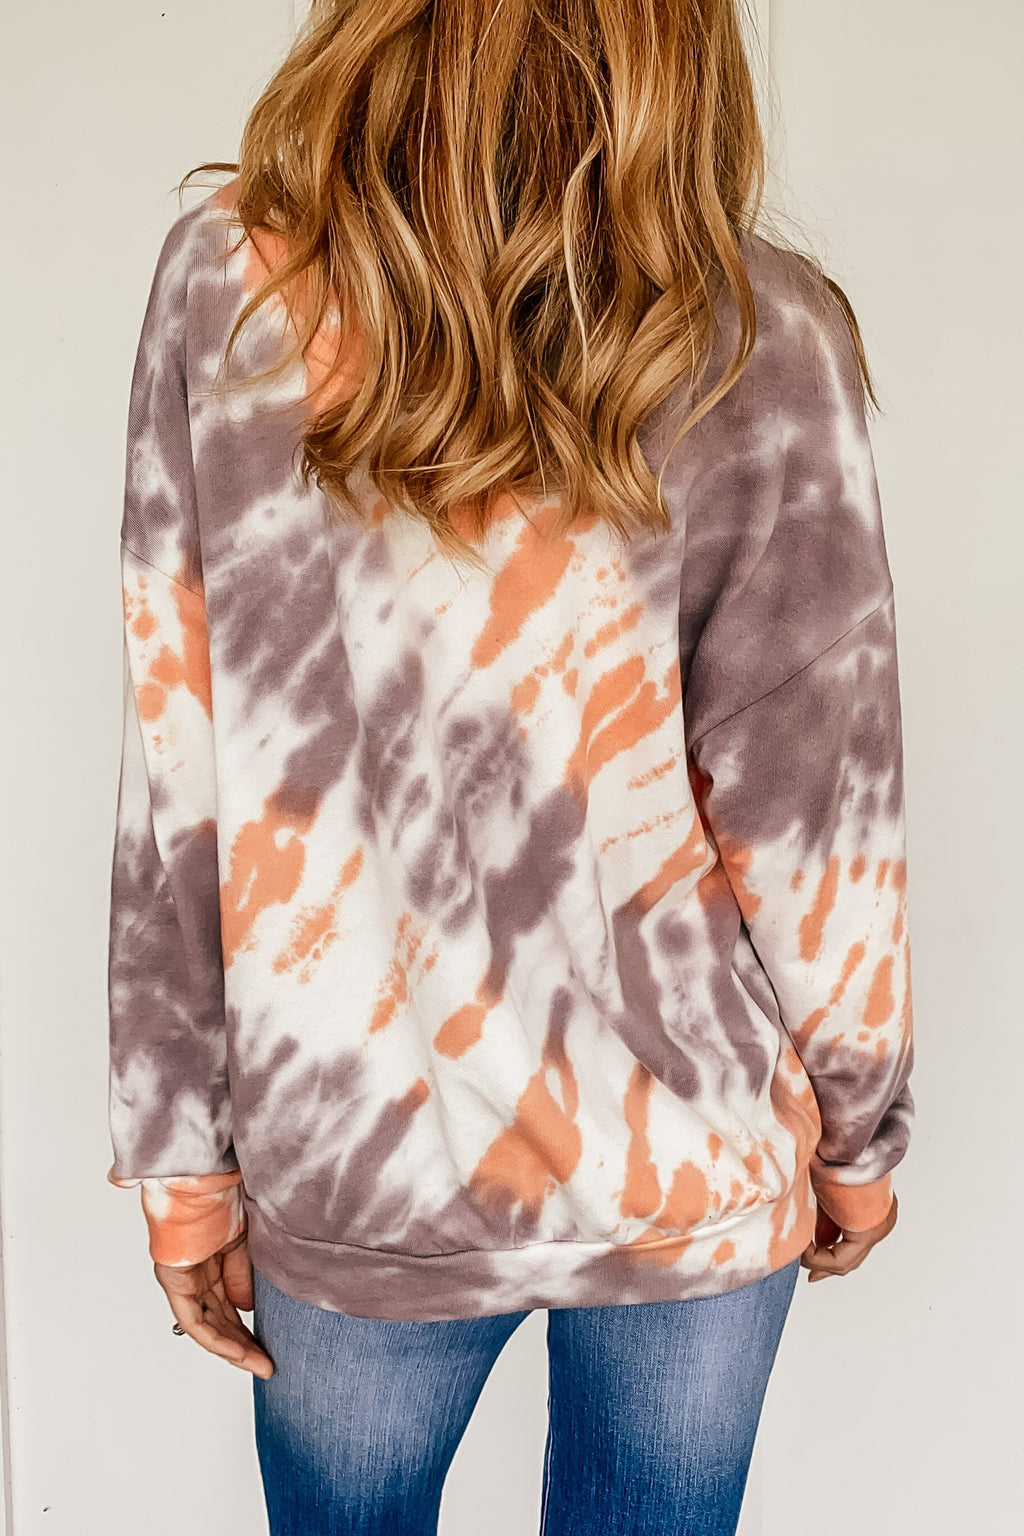 Color Contrast Tie Dye Sweatshirt in Coral and Mocha